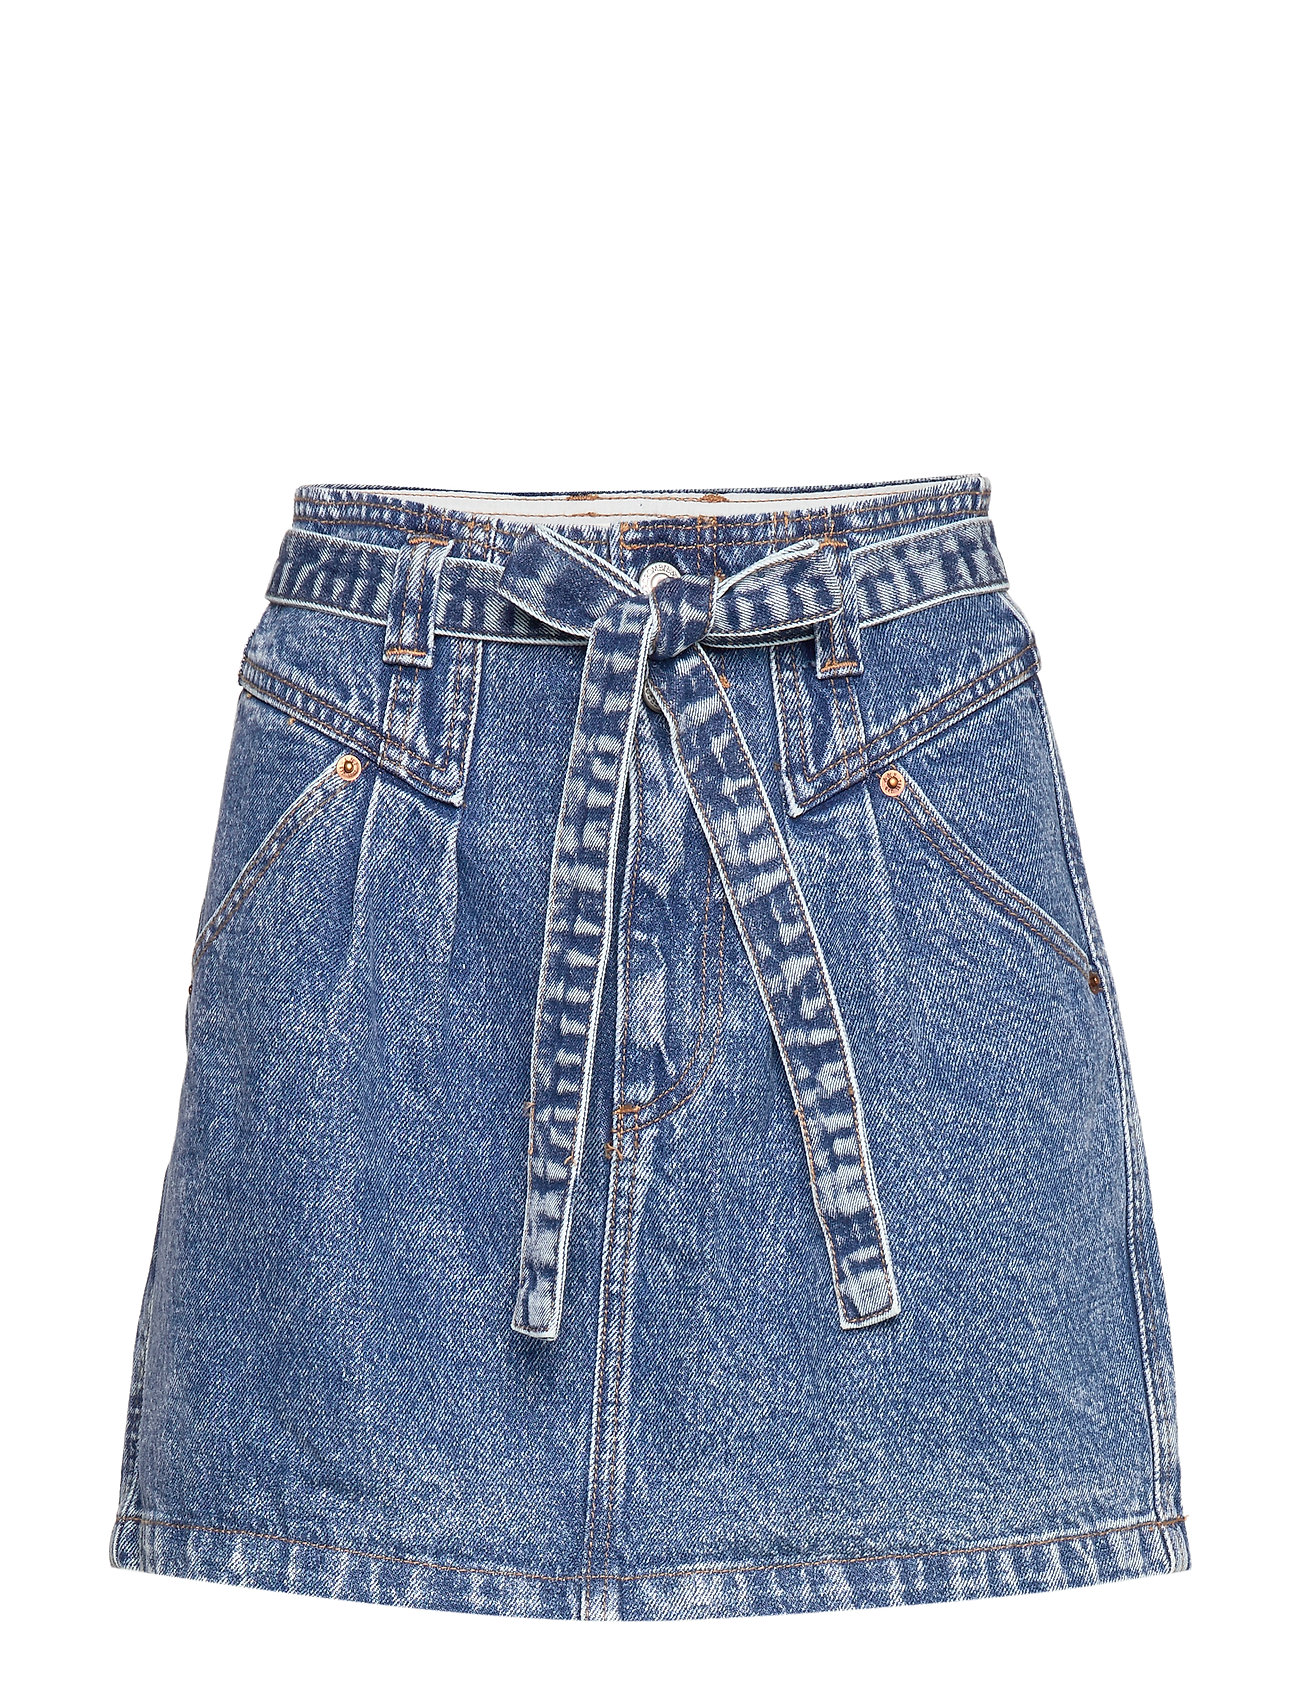 Abercrombie & Fitch Button Front Skirt - LIGHT